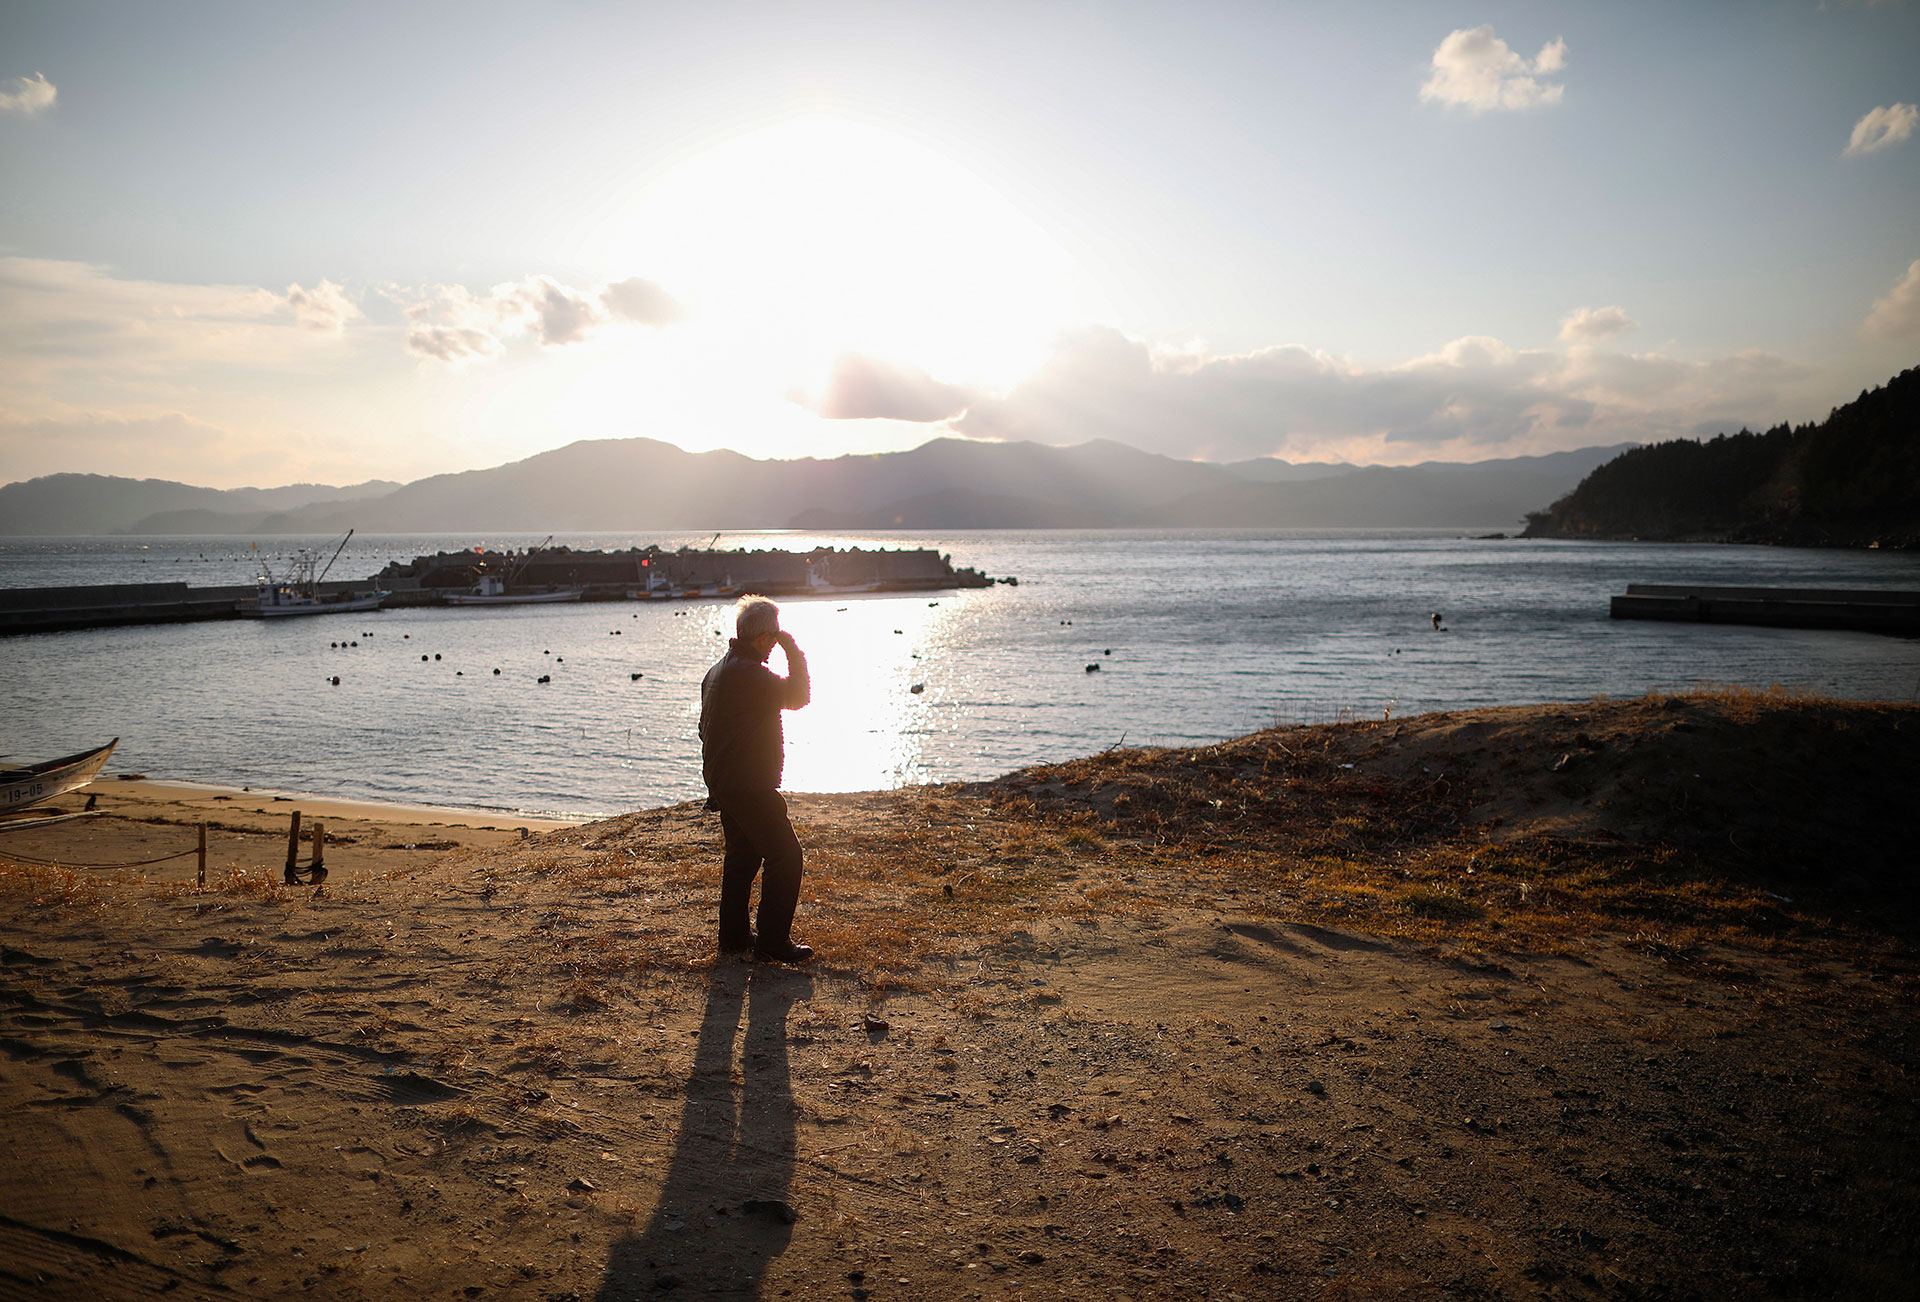 Ten years on, grief never subsides for some survivors of Japan's tsunami